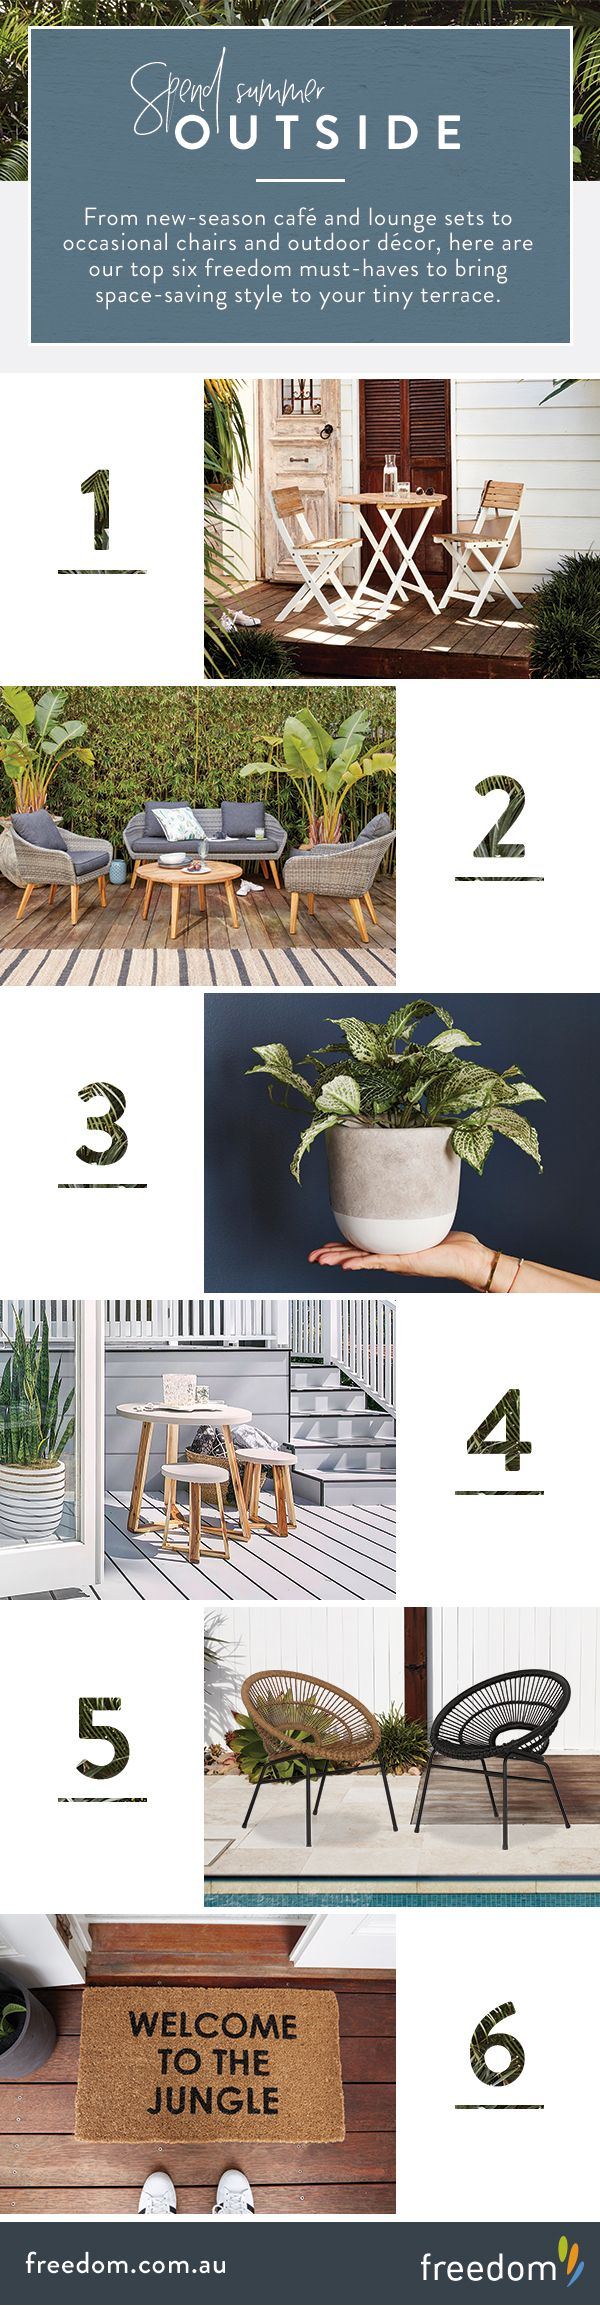 Make smart use of your petite outdoor retreat with our stylish collection of alfresco essentials that are scaled compact while offering maximum impact. From new-season café and lounge sets to occasional chairs and evergreen botanicals, here are our top six freedom must-haves to bring space-saving style to your tiny terrace.